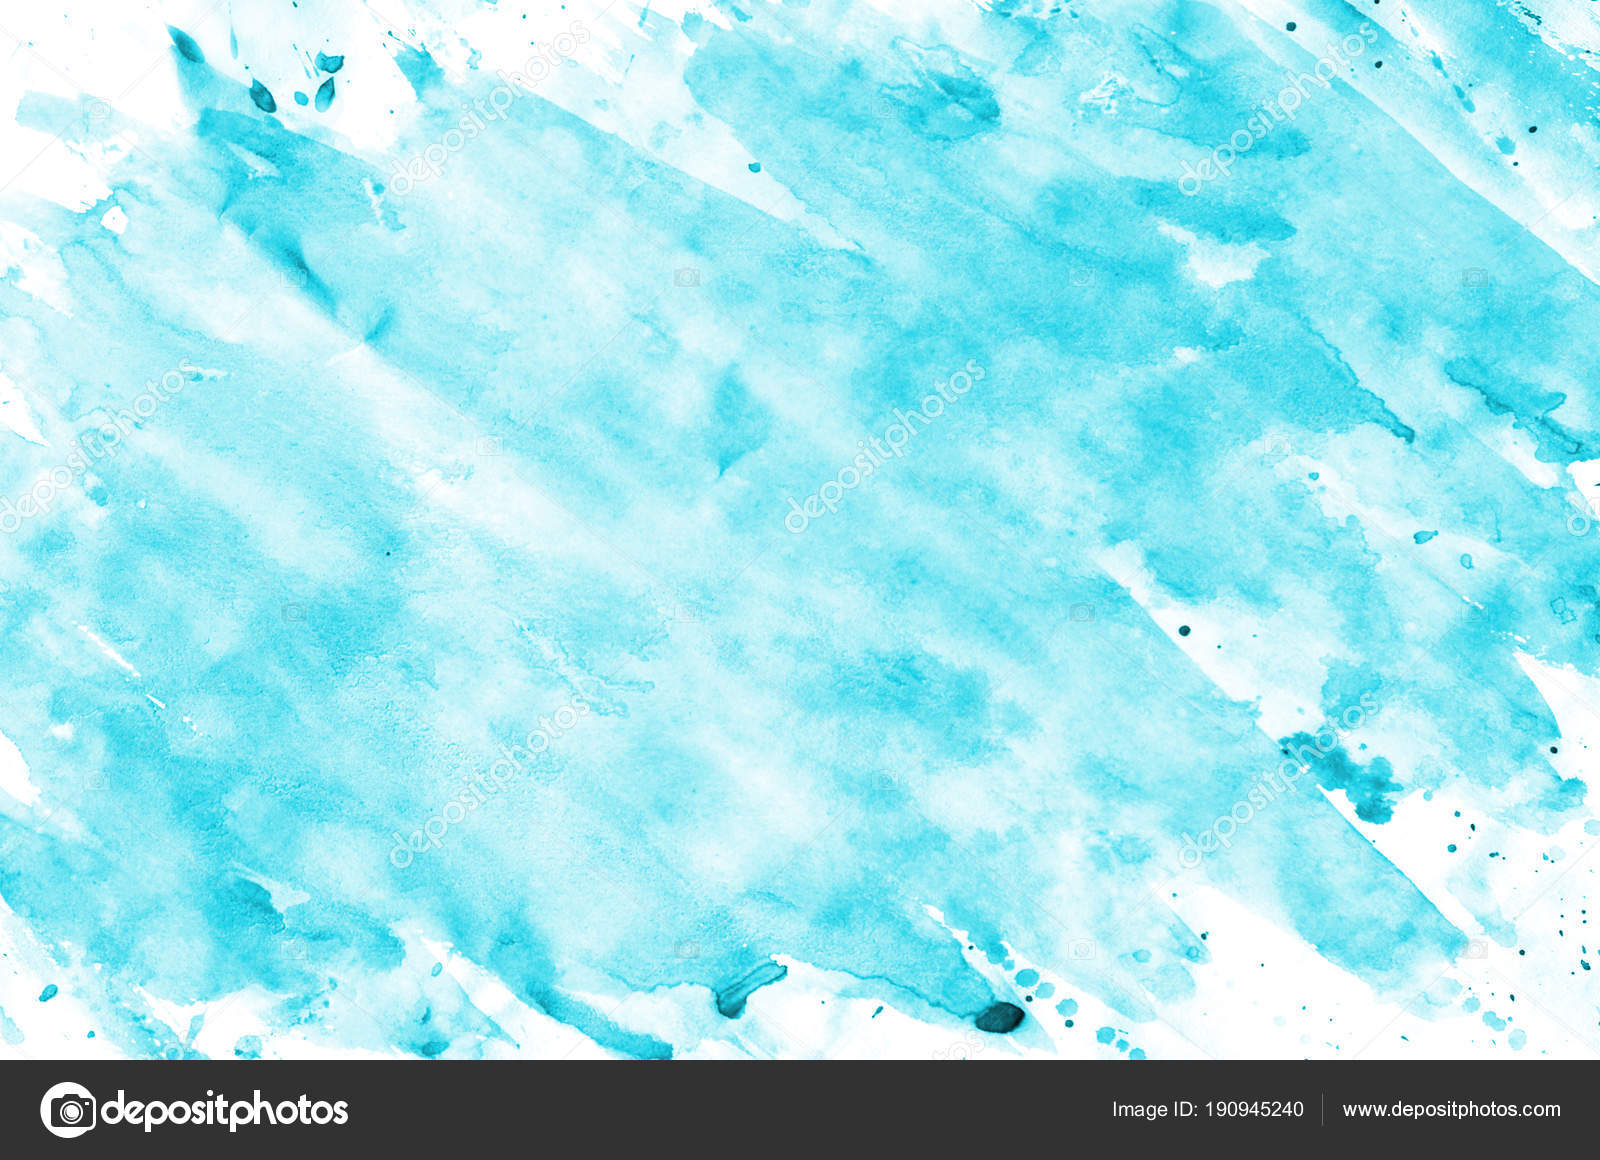 Colorful Blue Watercolor Wet Brush Paint Liquid Background